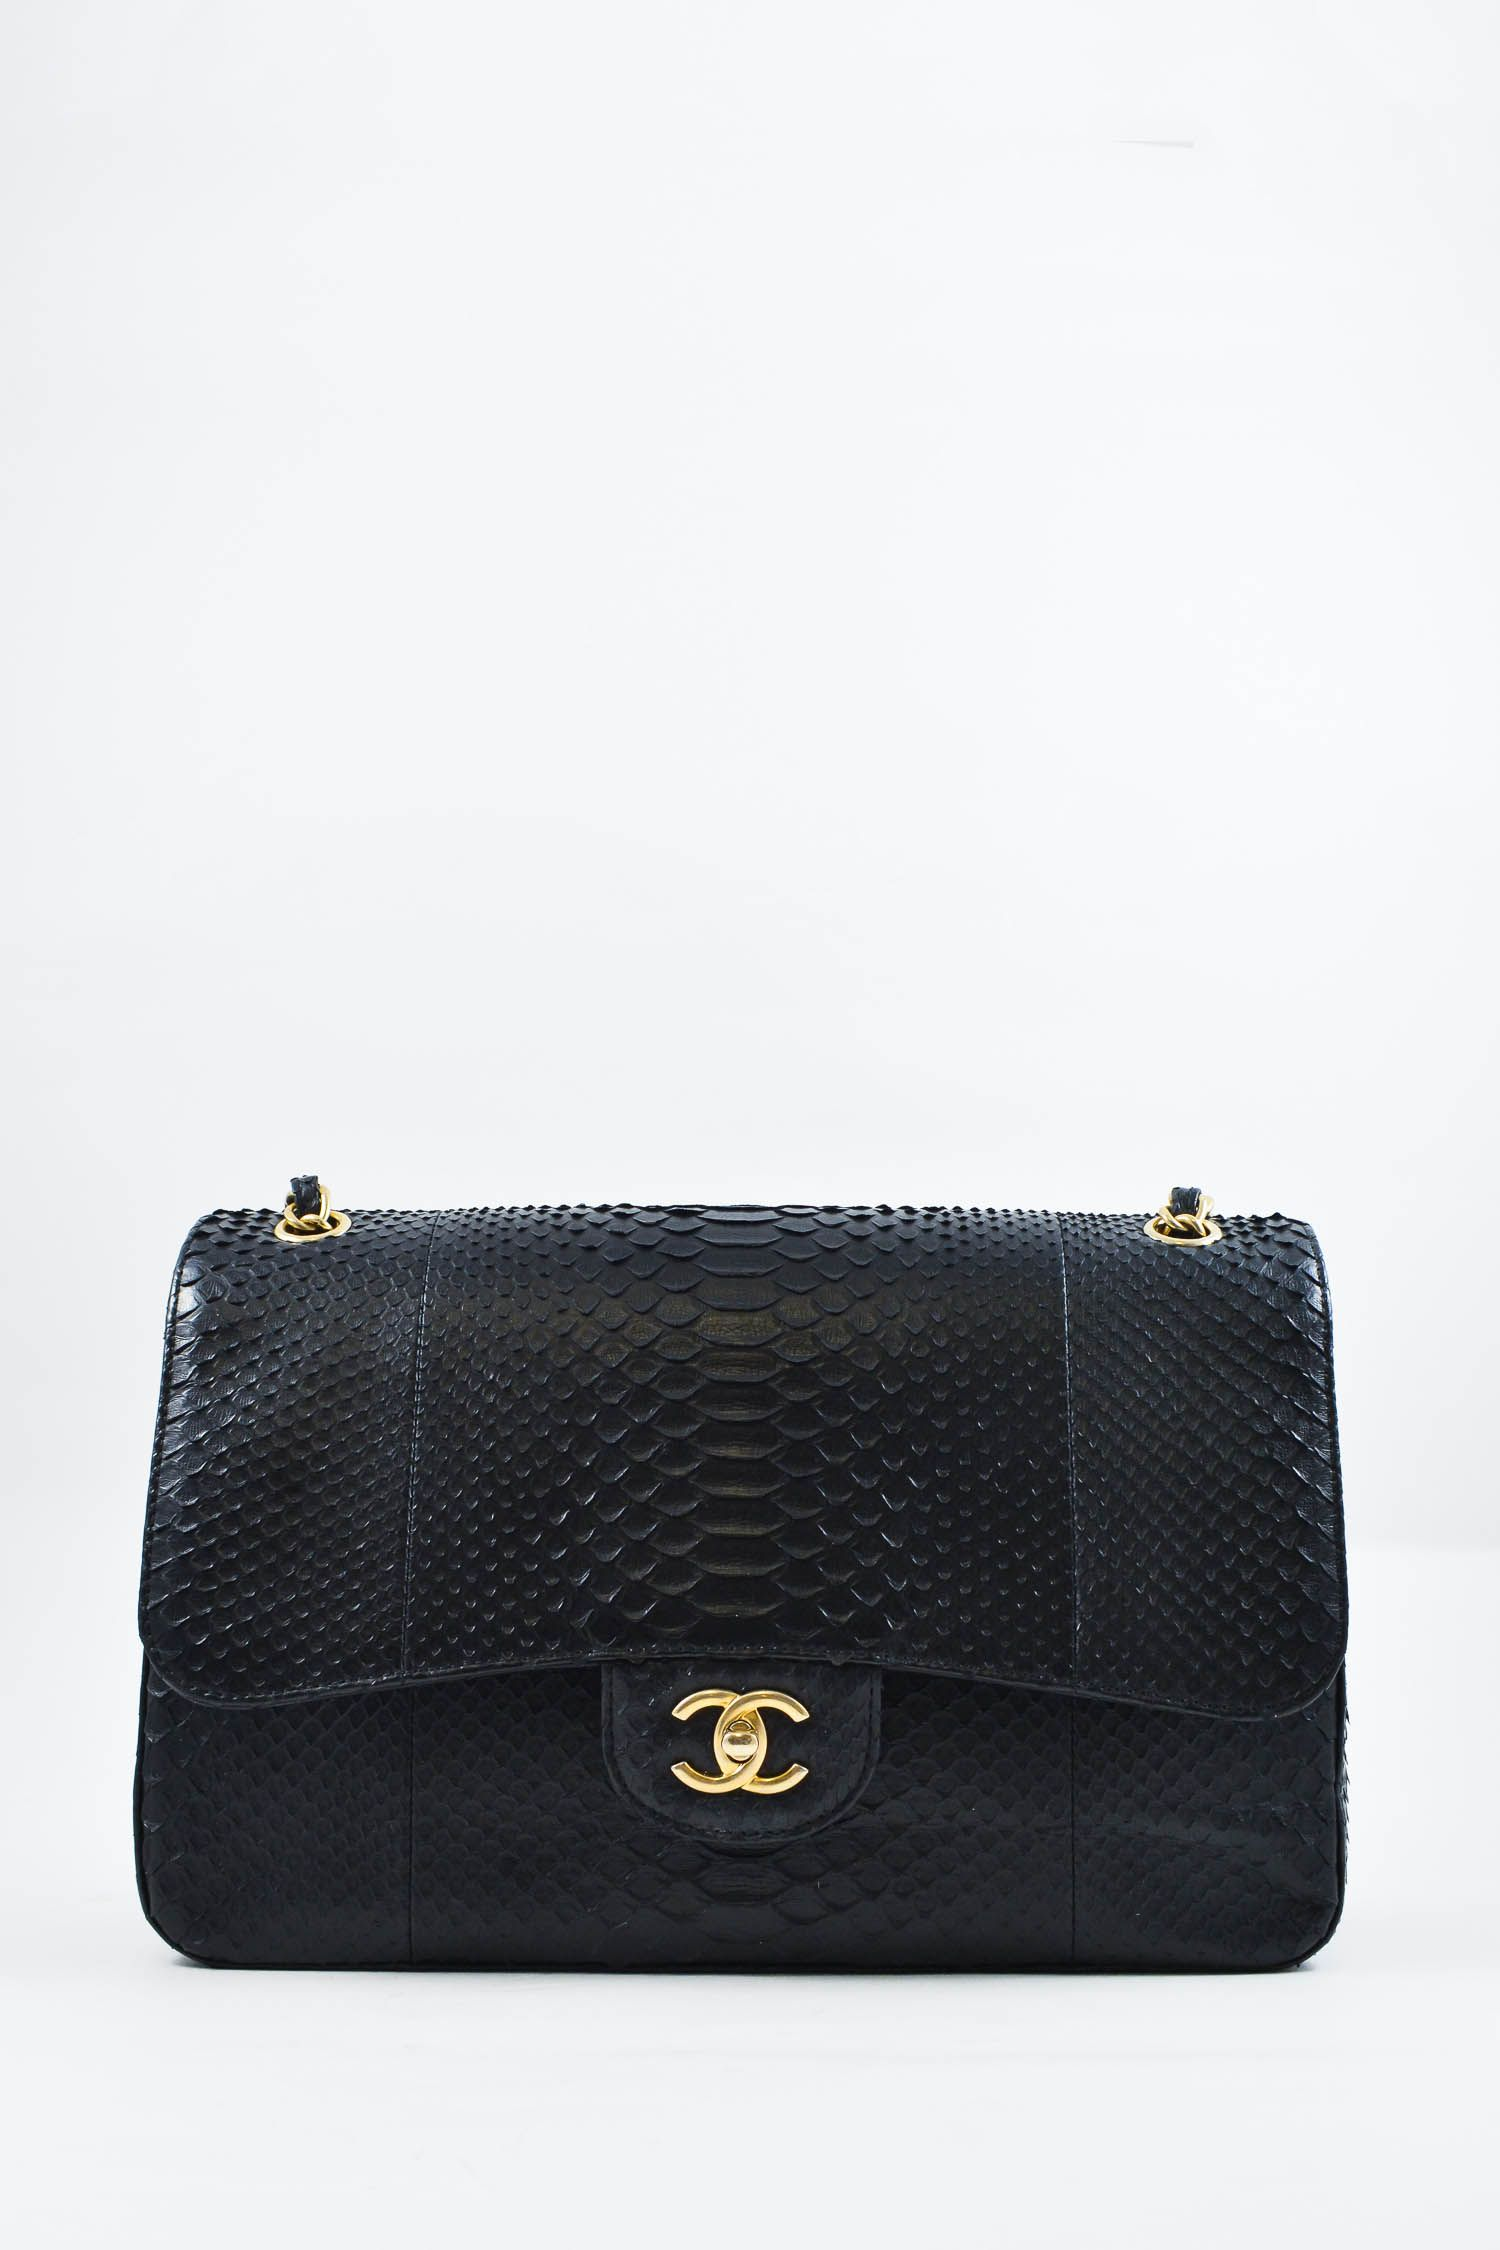 697d7258550b6 Chanel classic jumbo double flap bag in antique black Python with gold  hardware. Features signature Chanel CC turn-lock closure